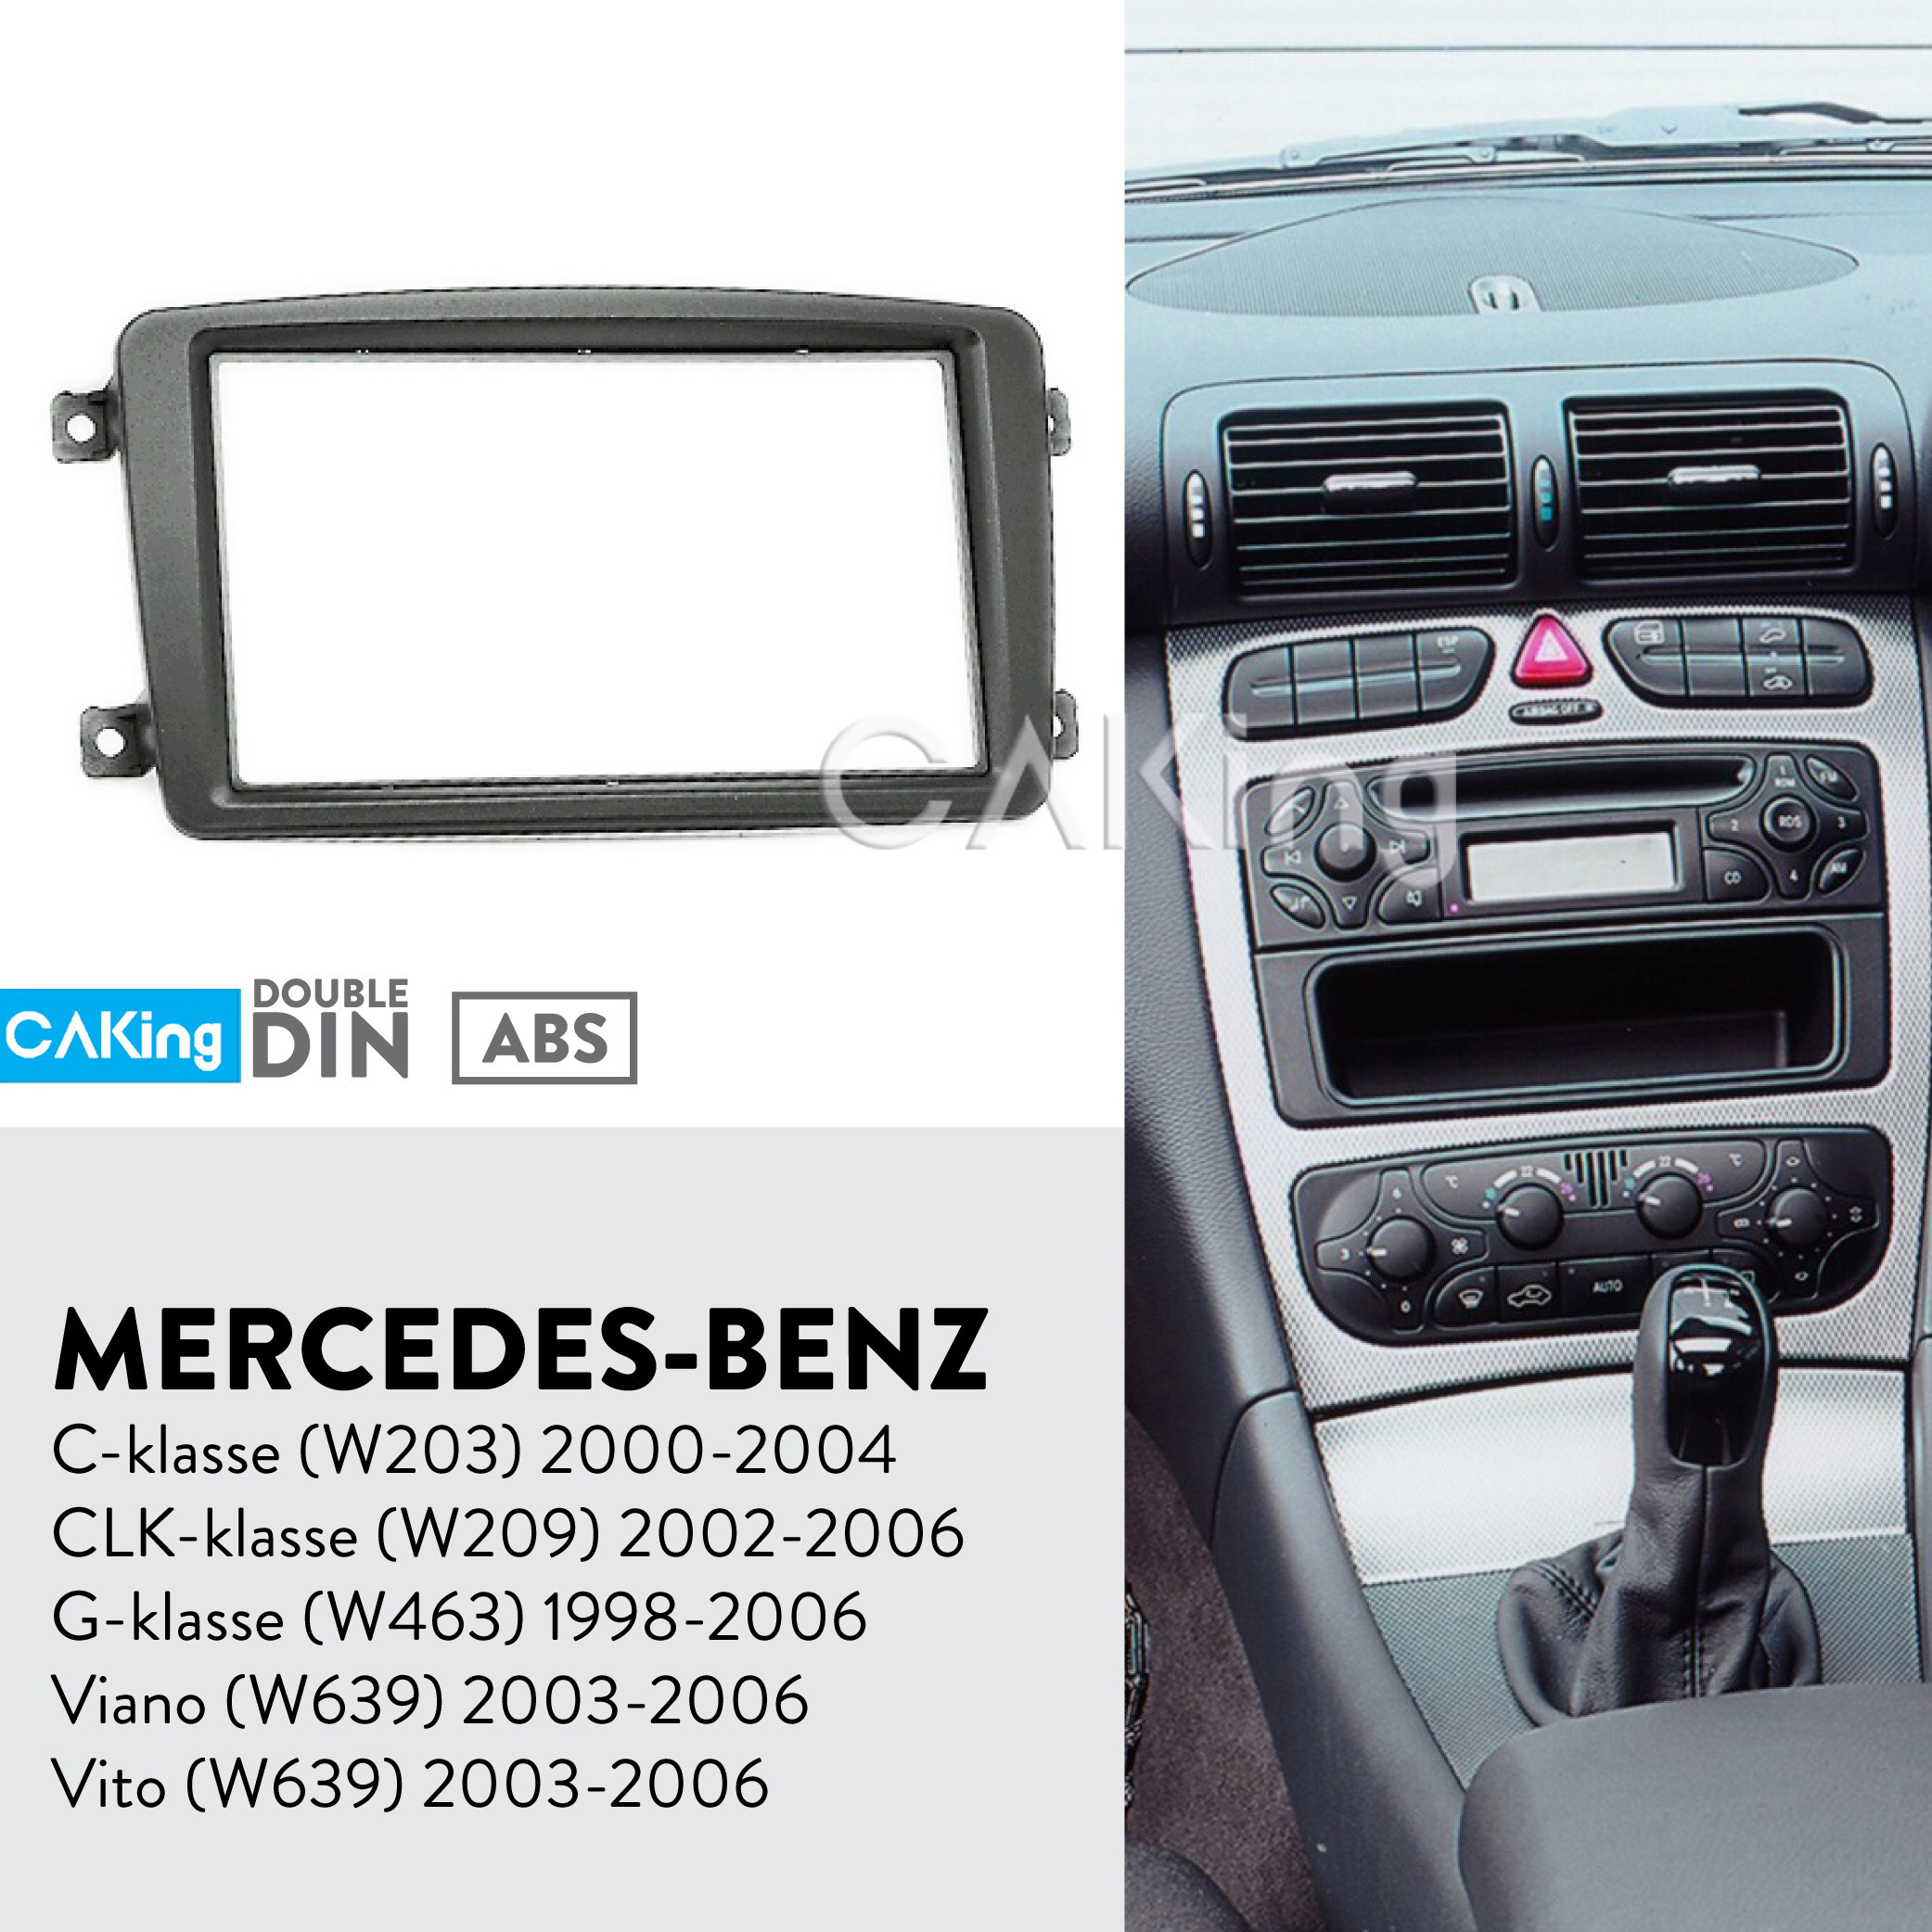 Mercedes Benz Vito W639 06 Car Stereo Double Din Fascia /& Fitting Kit